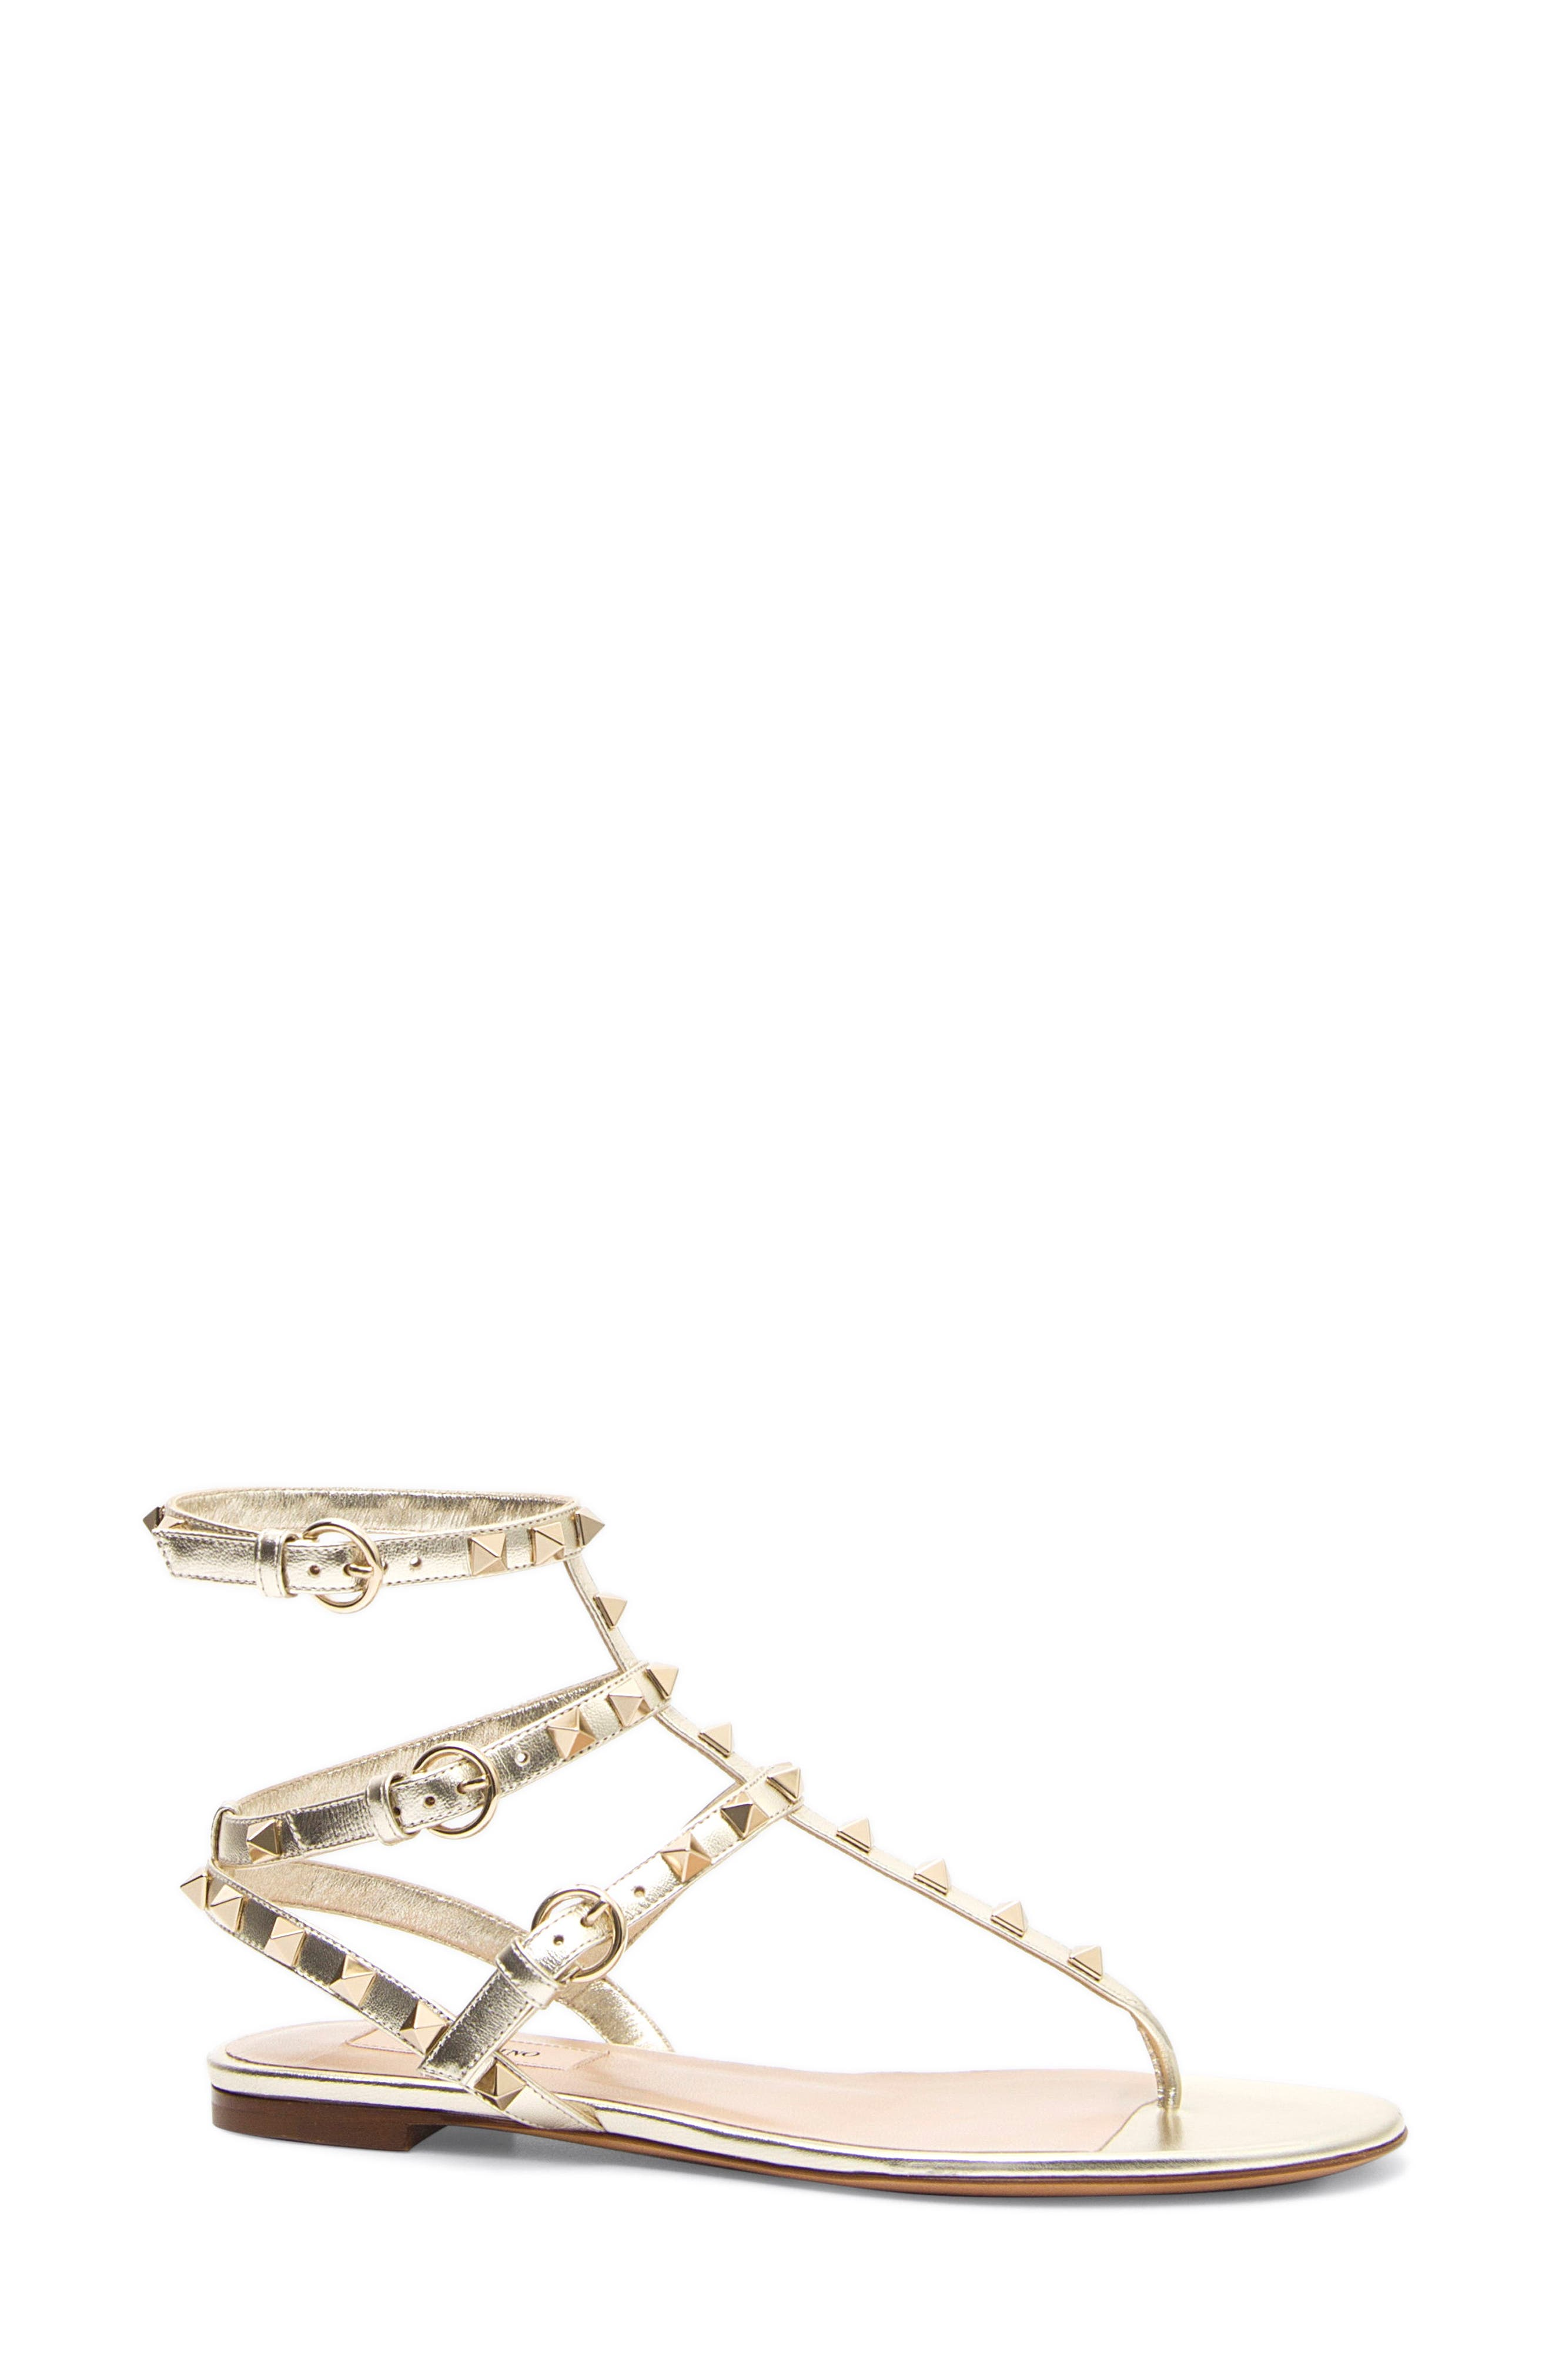 Valentino\'s signature gilded pyramid studs multiply the shine on a cage sandal shaped from shimmery calfskin leather. Style Name: Valentino Garavani Rockstud Metallic Thong (Women). Style Number: 5429286. Available in stores.